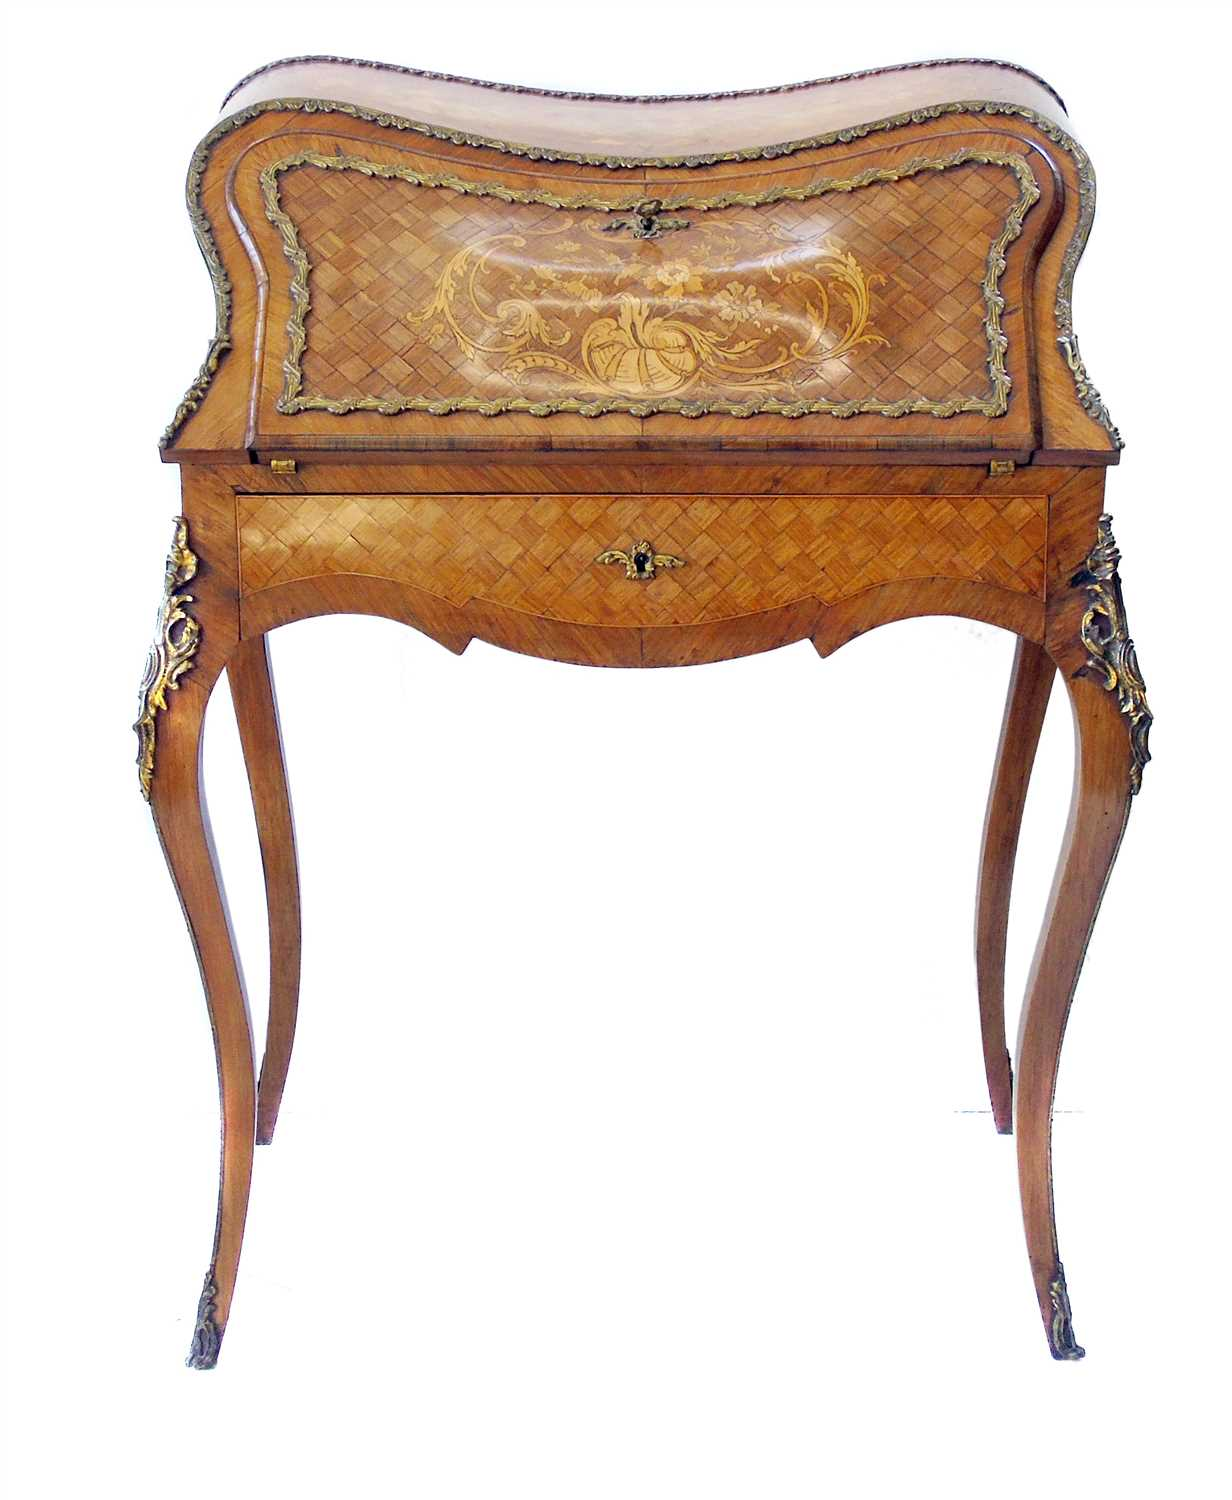 599 - Mid 19th century French Kingwood veneered ladies writing bureau